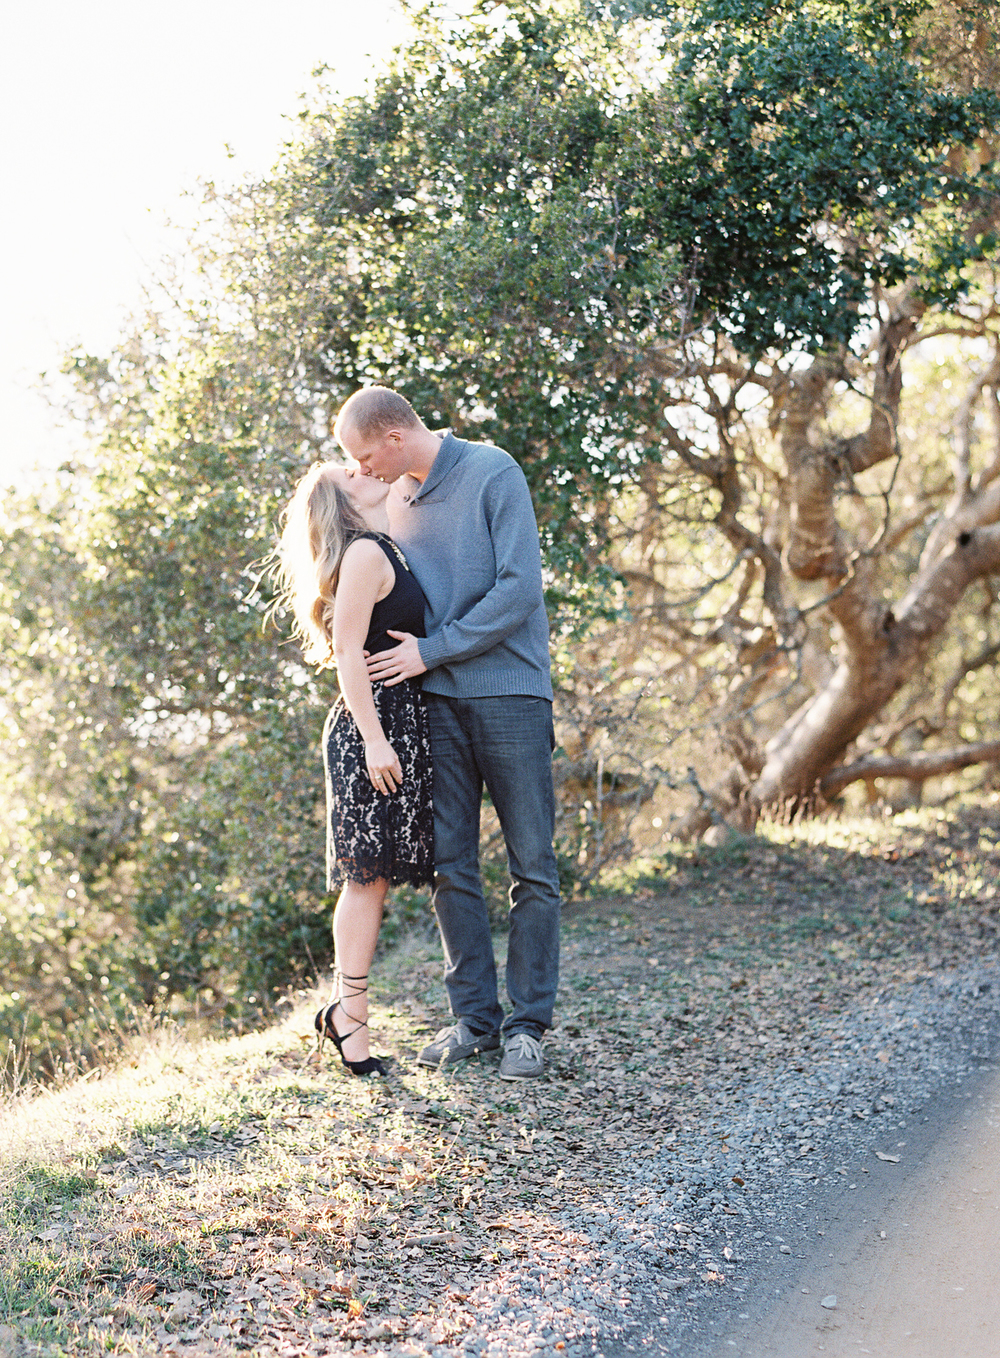 Meghan Mehan Photography - Fine Art Film Photography - San Francisco | Napa | Sonoma | Big Sur | Carmel | Nashville | Chicago | Wisconsin 012.jpg